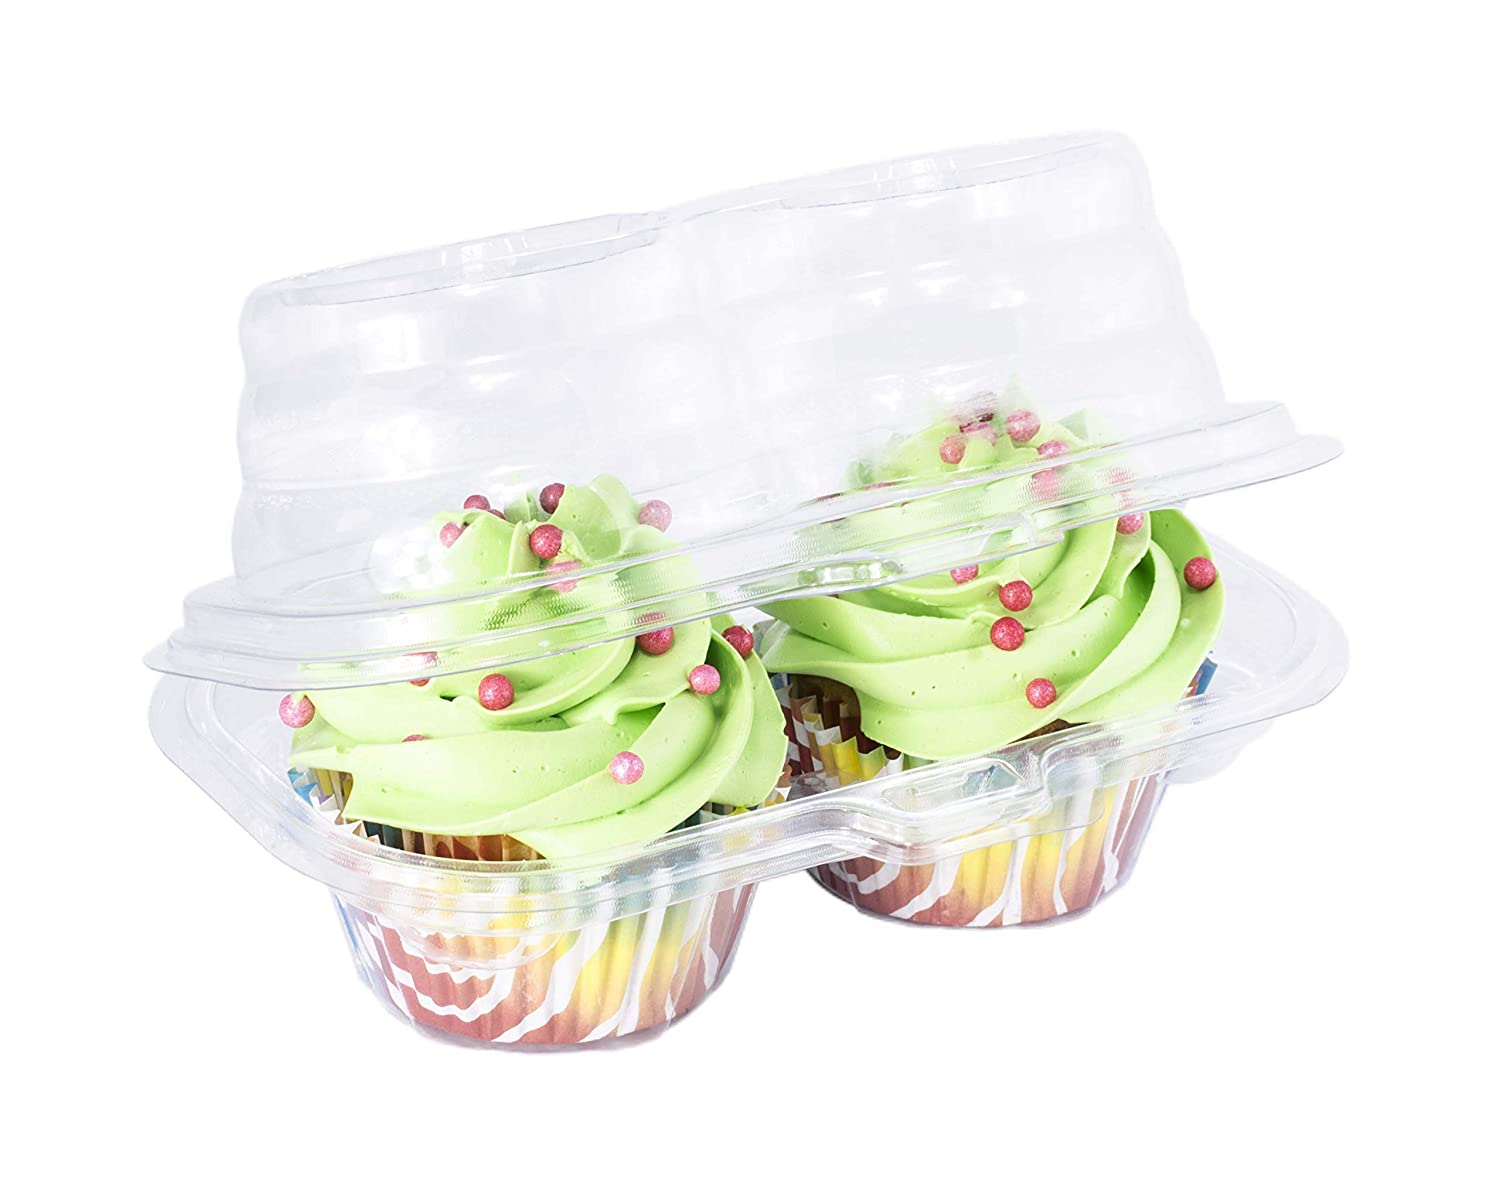 Katgely 2 Compartment Cupcake Container - Deep Cupcake Carrier Holder Box - BPA-Free - Clear Plastic Stackable (50)